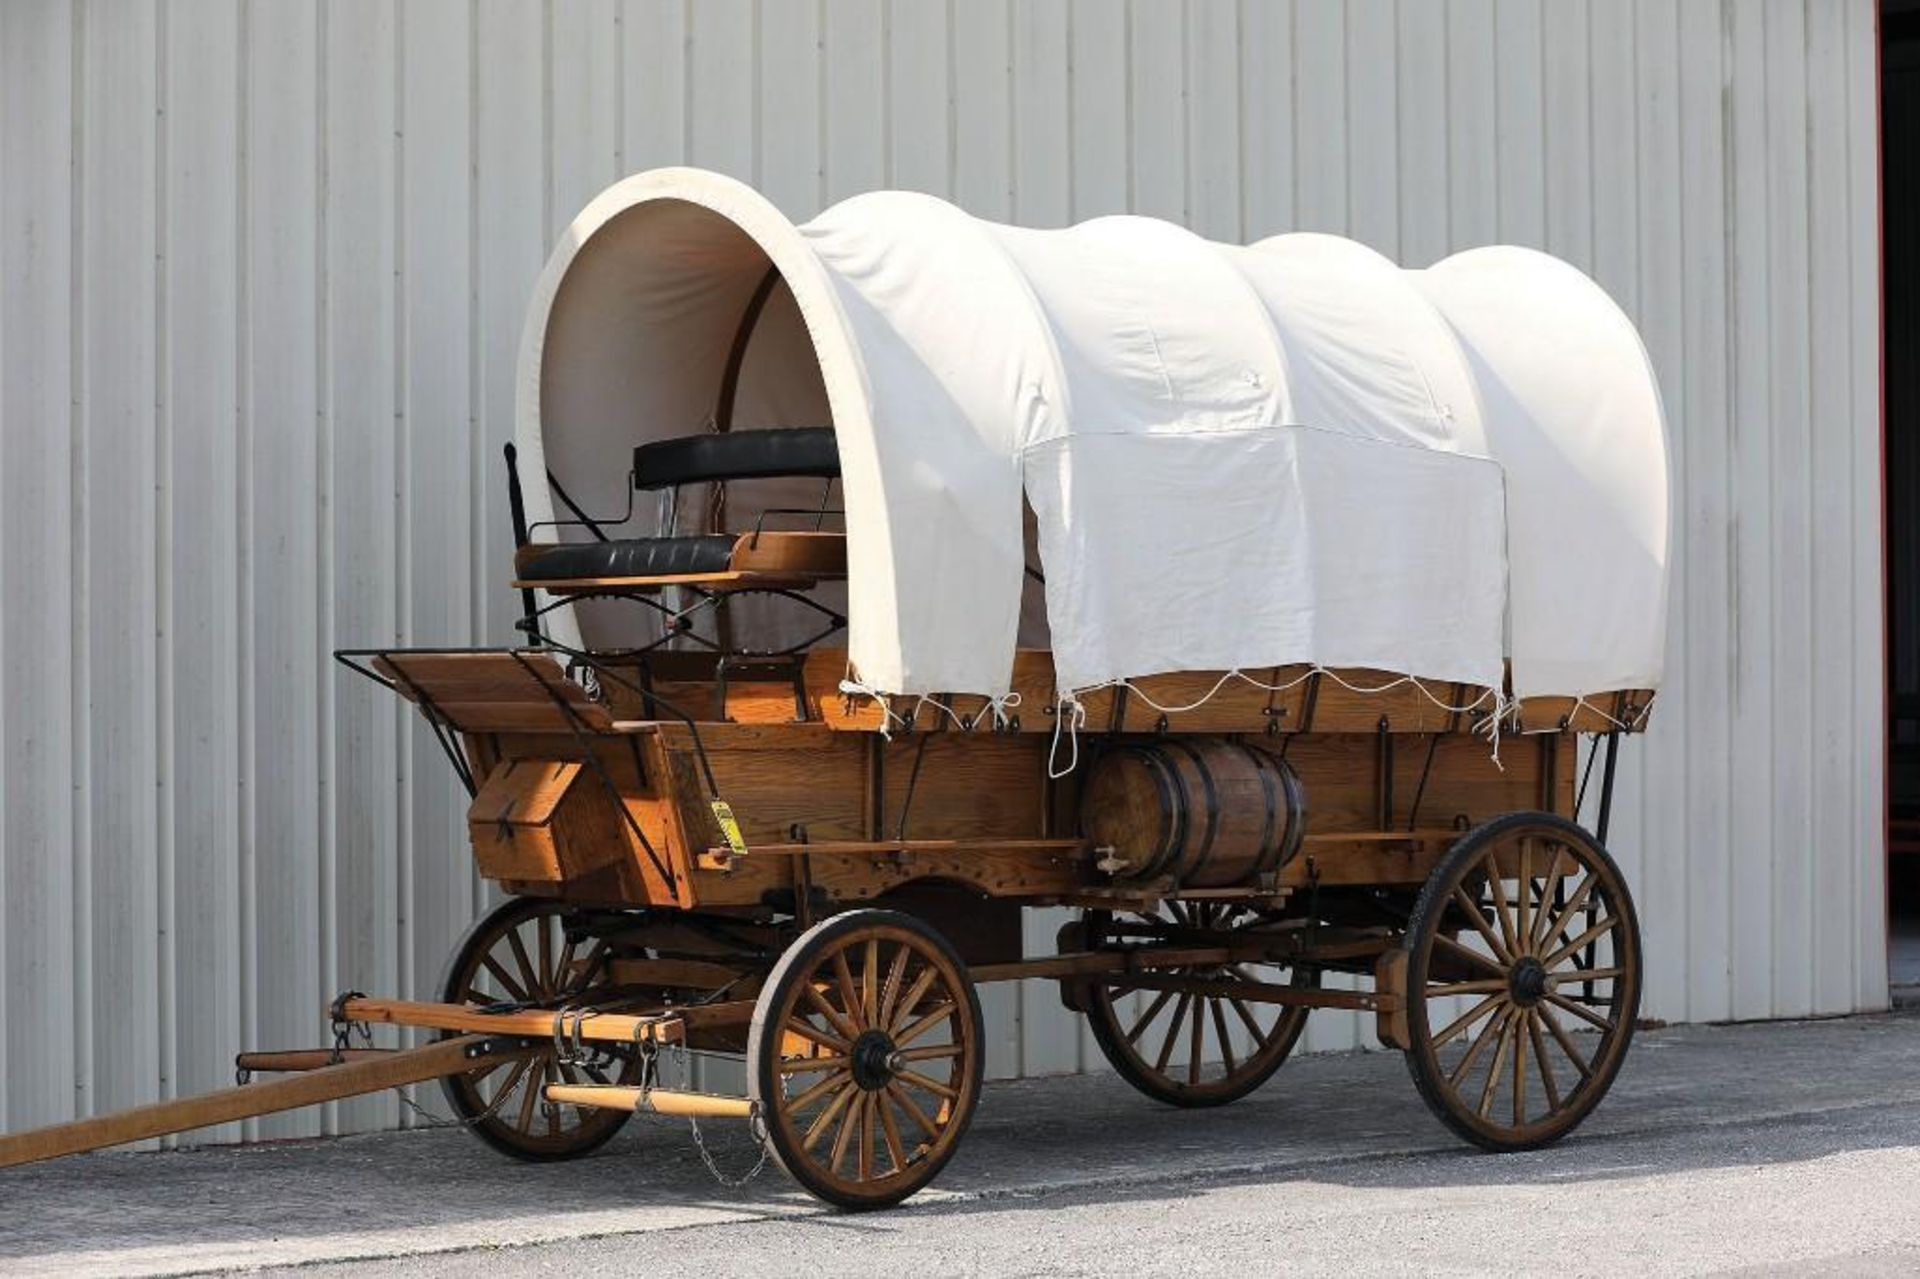 Replica Covered Wagon, Cook Box Inside, New - Never Hitched - Image 2 of 2